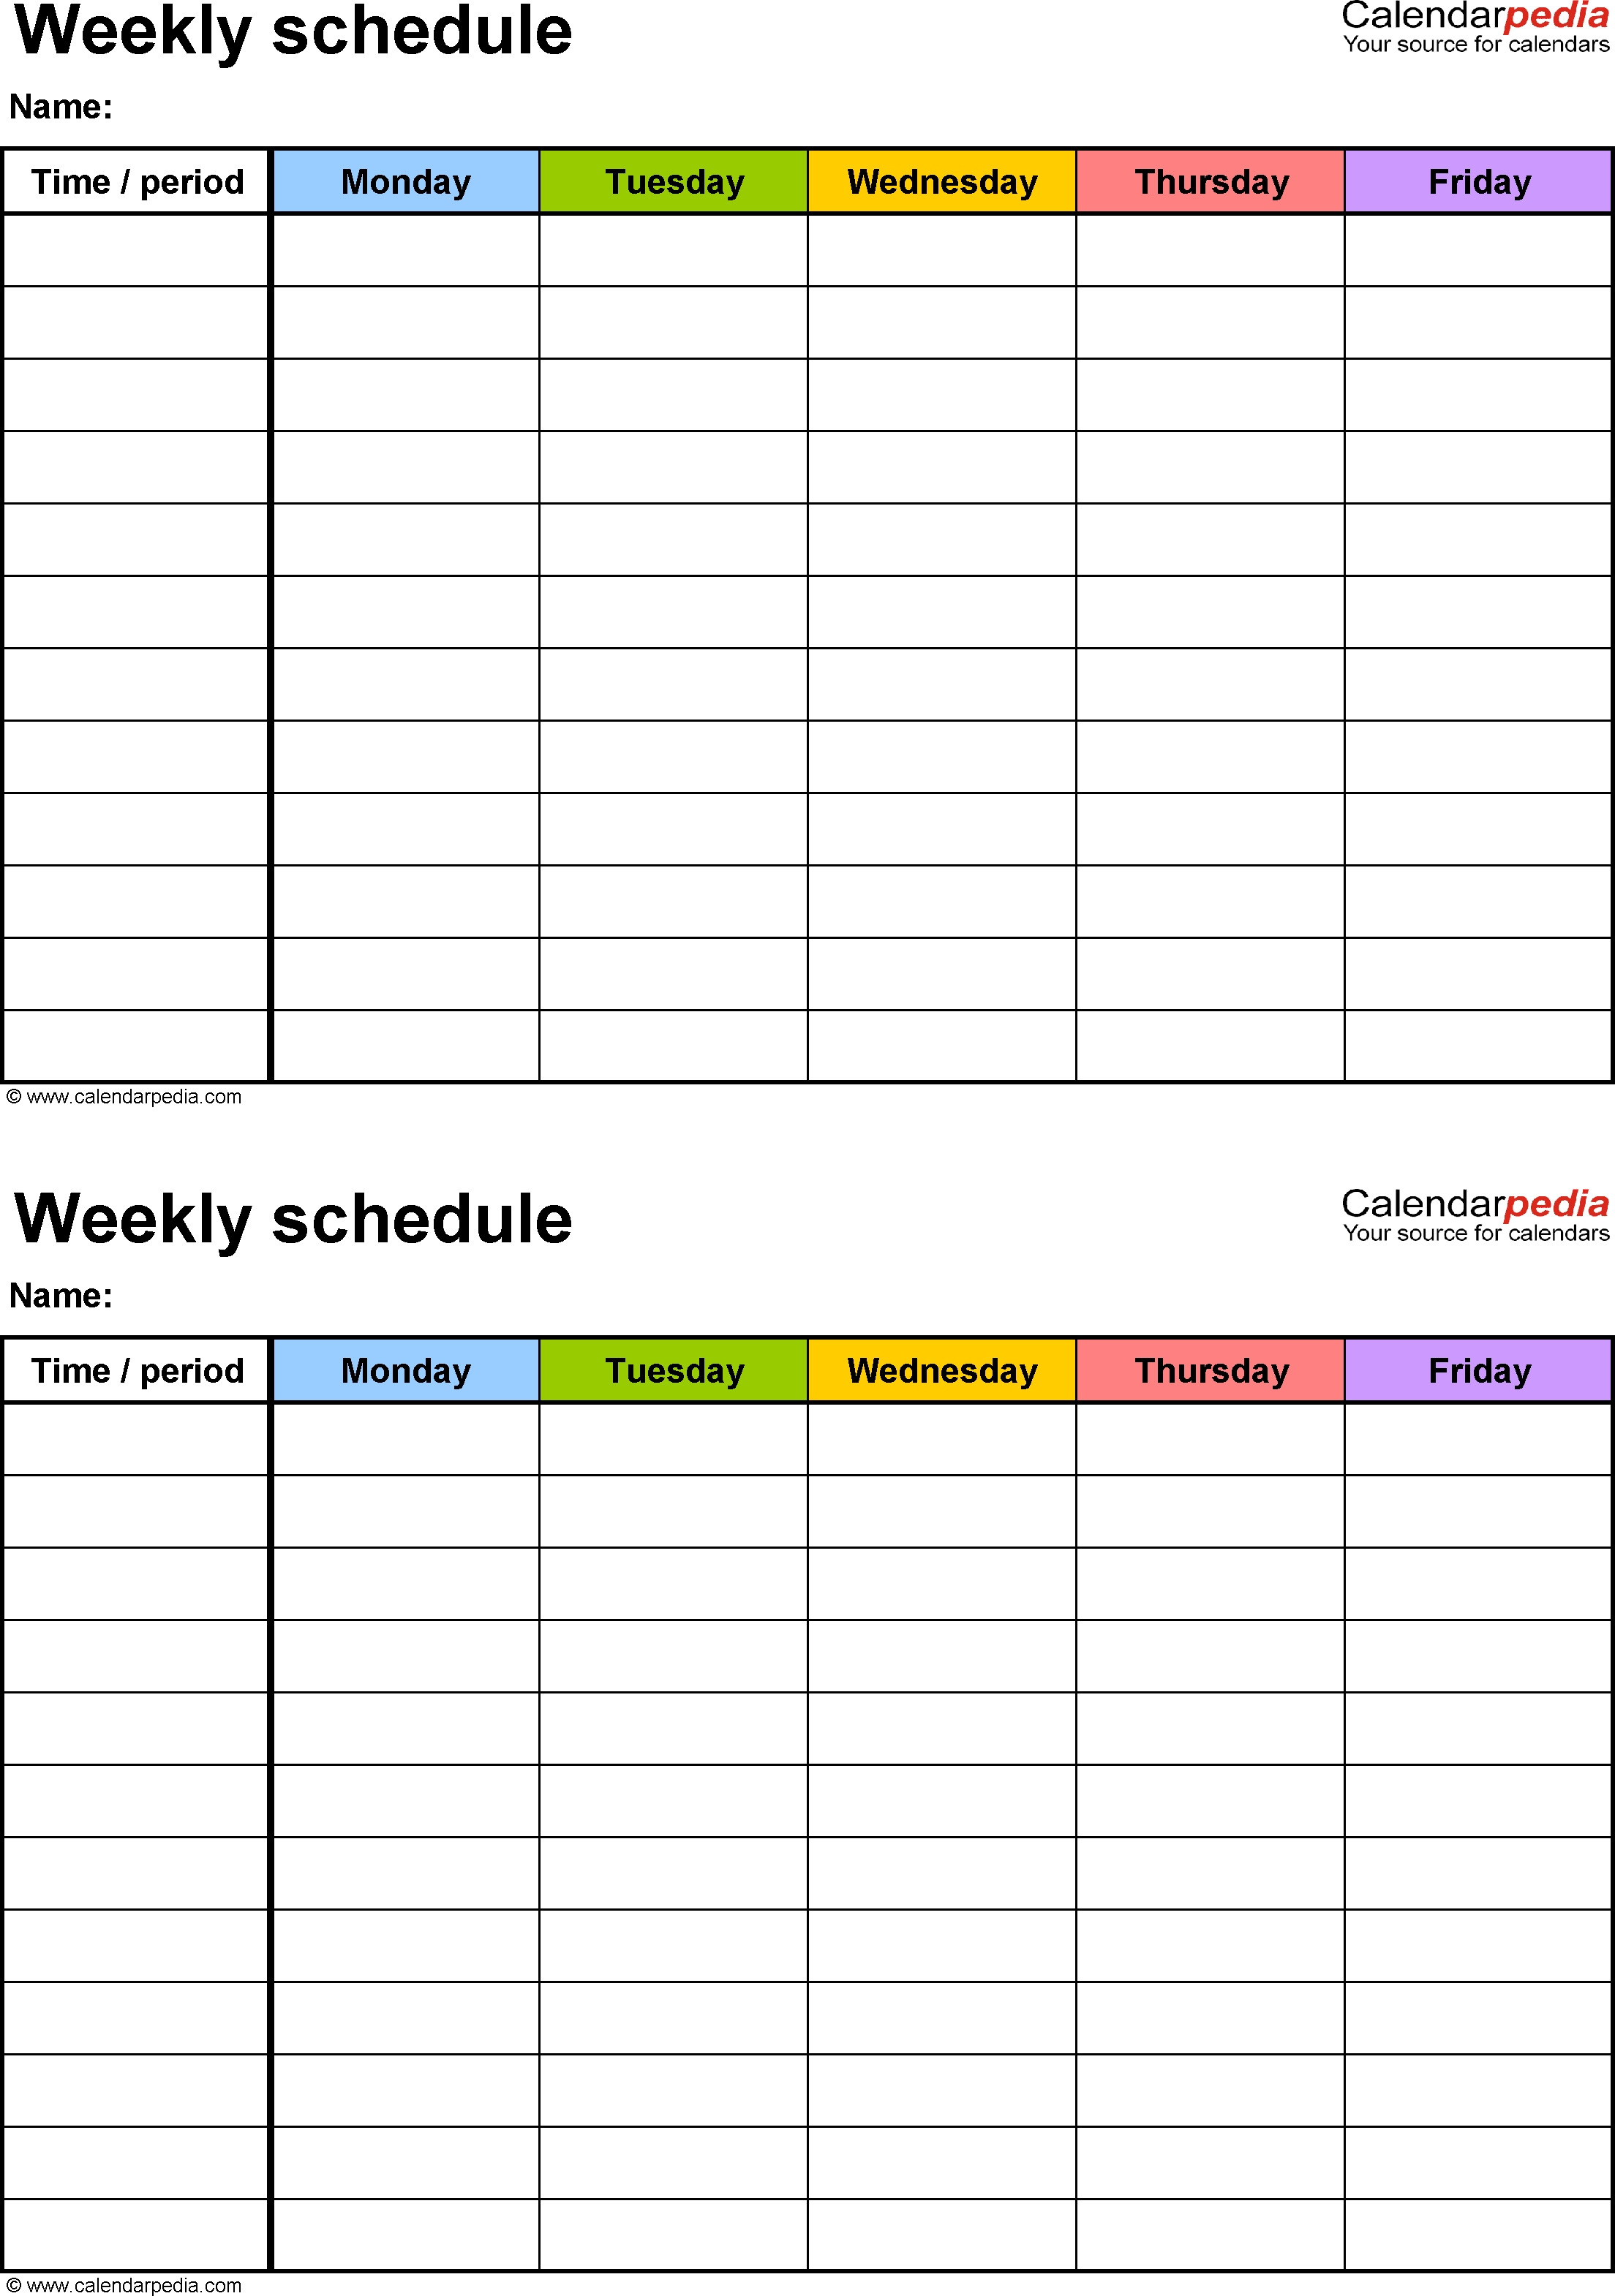 Free Weekly Schedule Templates For Word - 18 Templates-Monday Through Friday Schedule Template